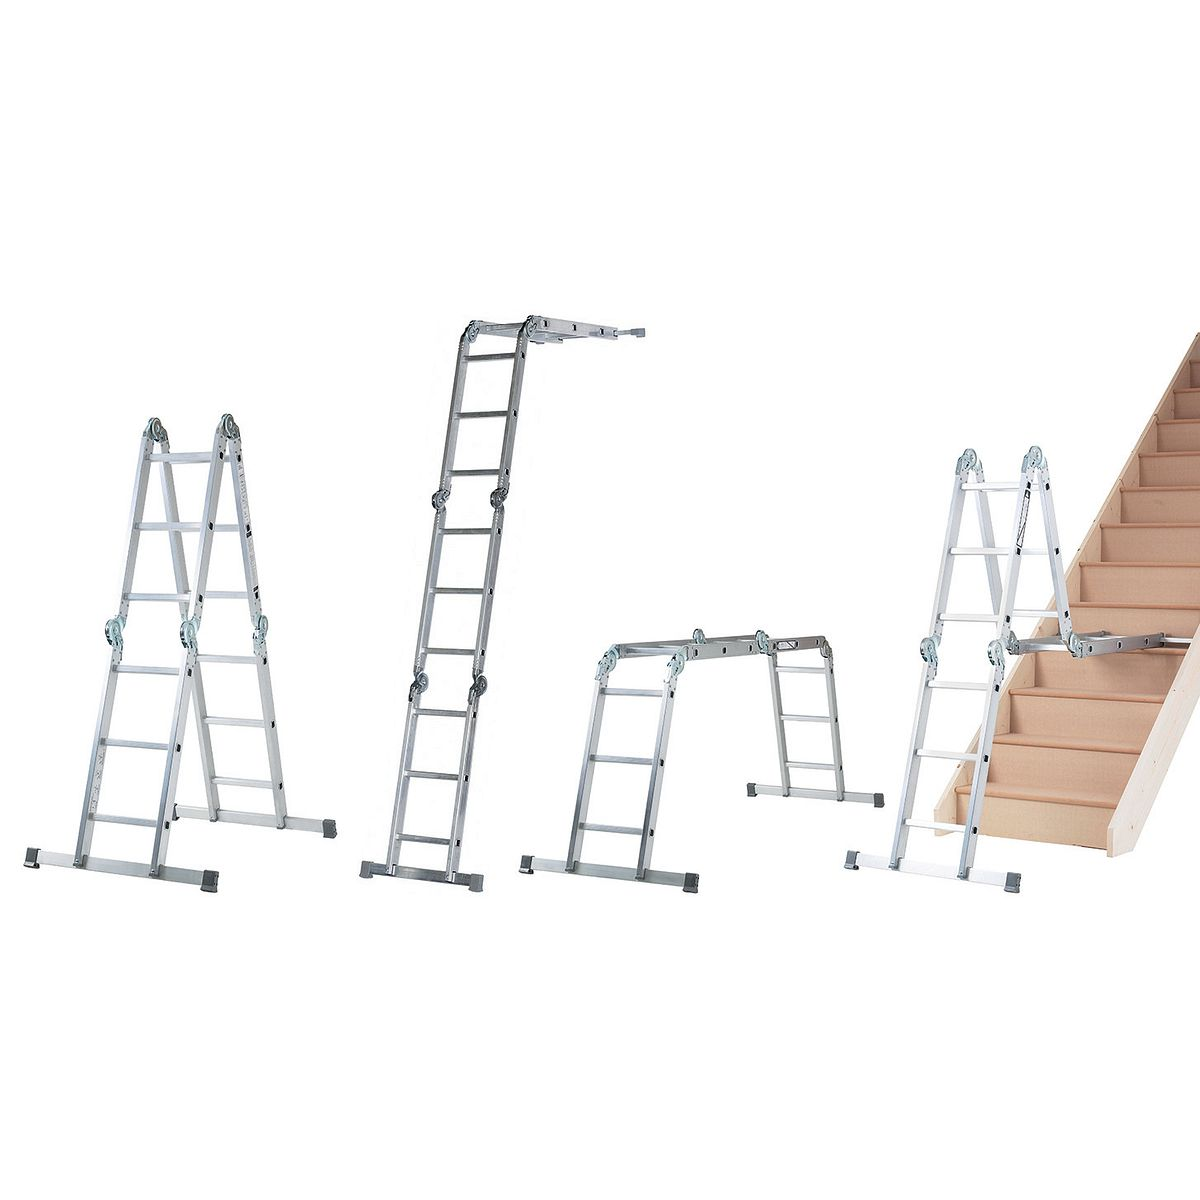 24044 Combination Ladders Abru Ladders And Rotary Dryers